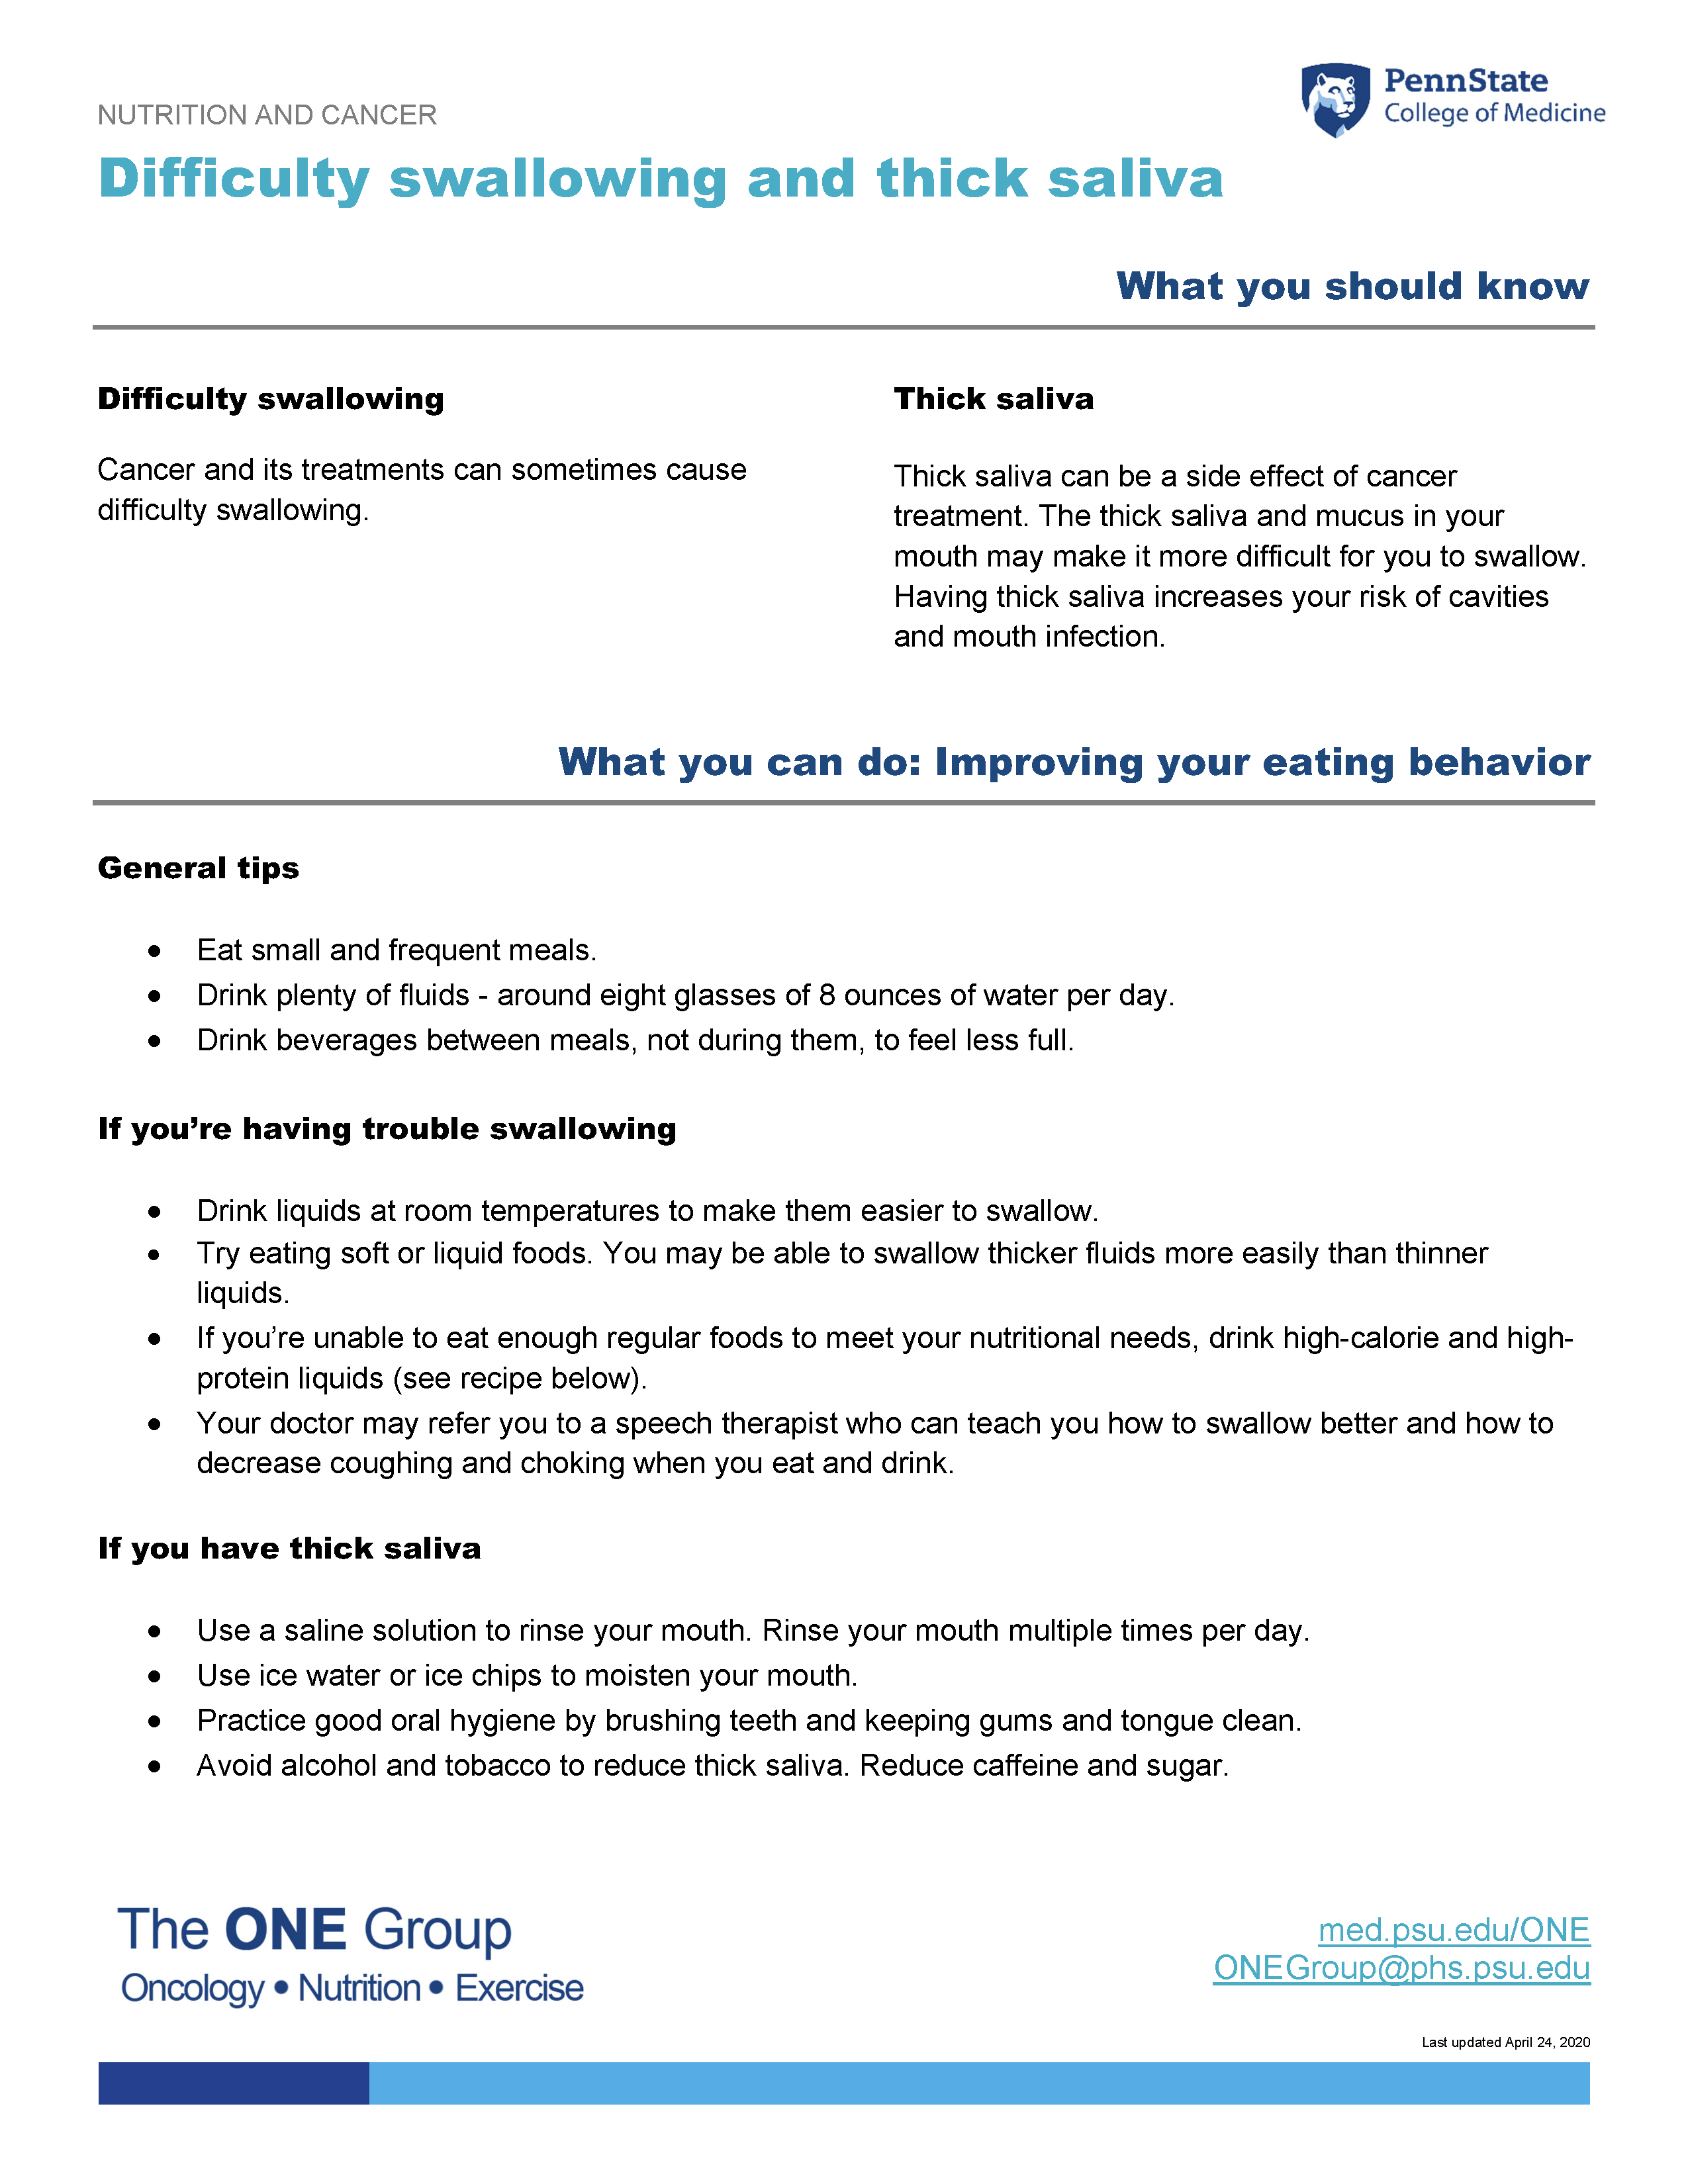 The difficulty swallowing and thick saliva guide from The ONE Group includes the information on this page, formatted for print.